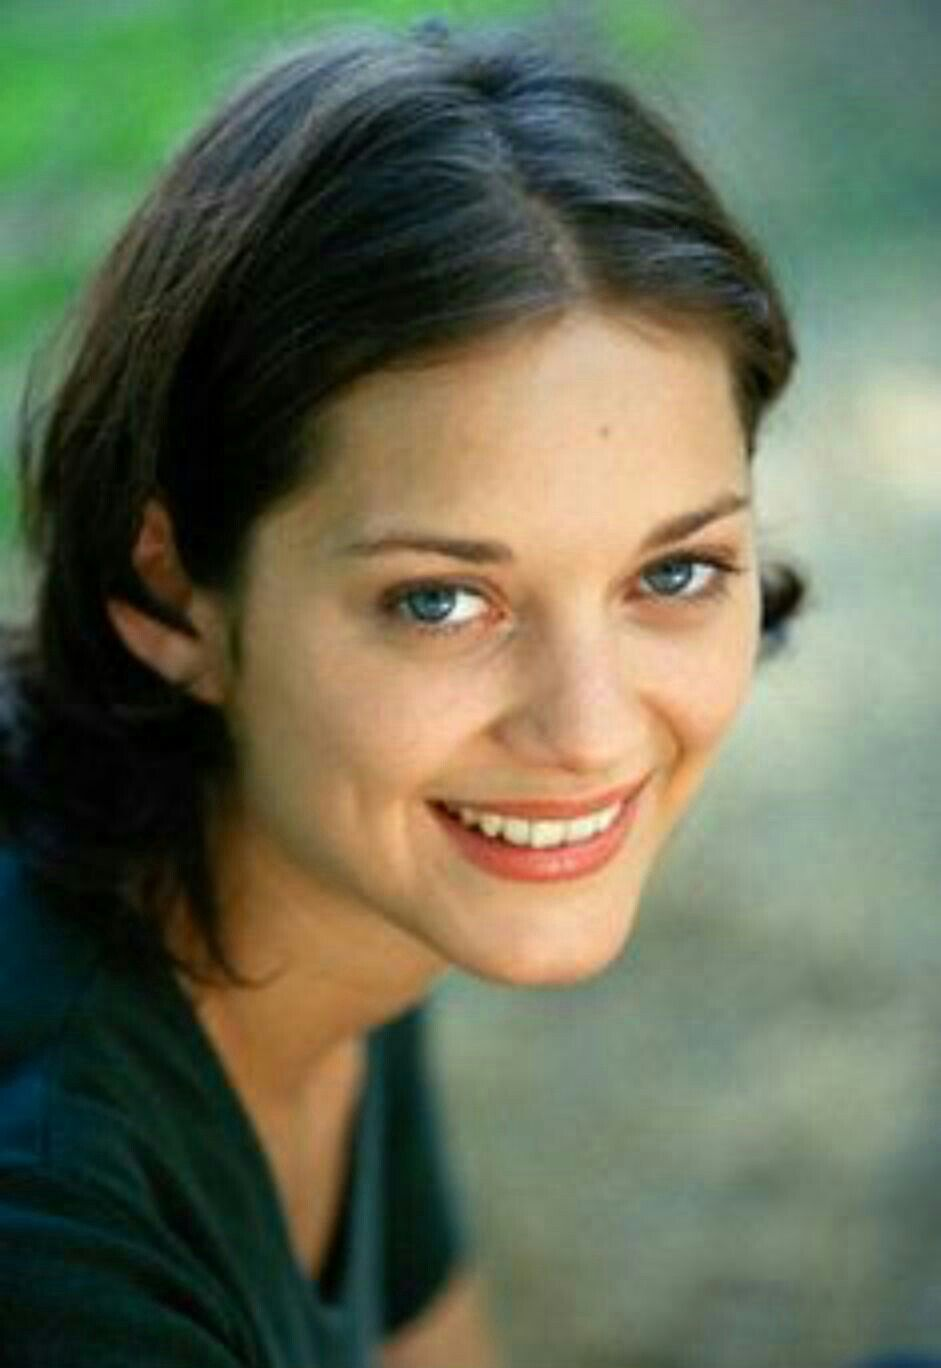 Marion Cotillard The Golden Throats Wiki Fandom